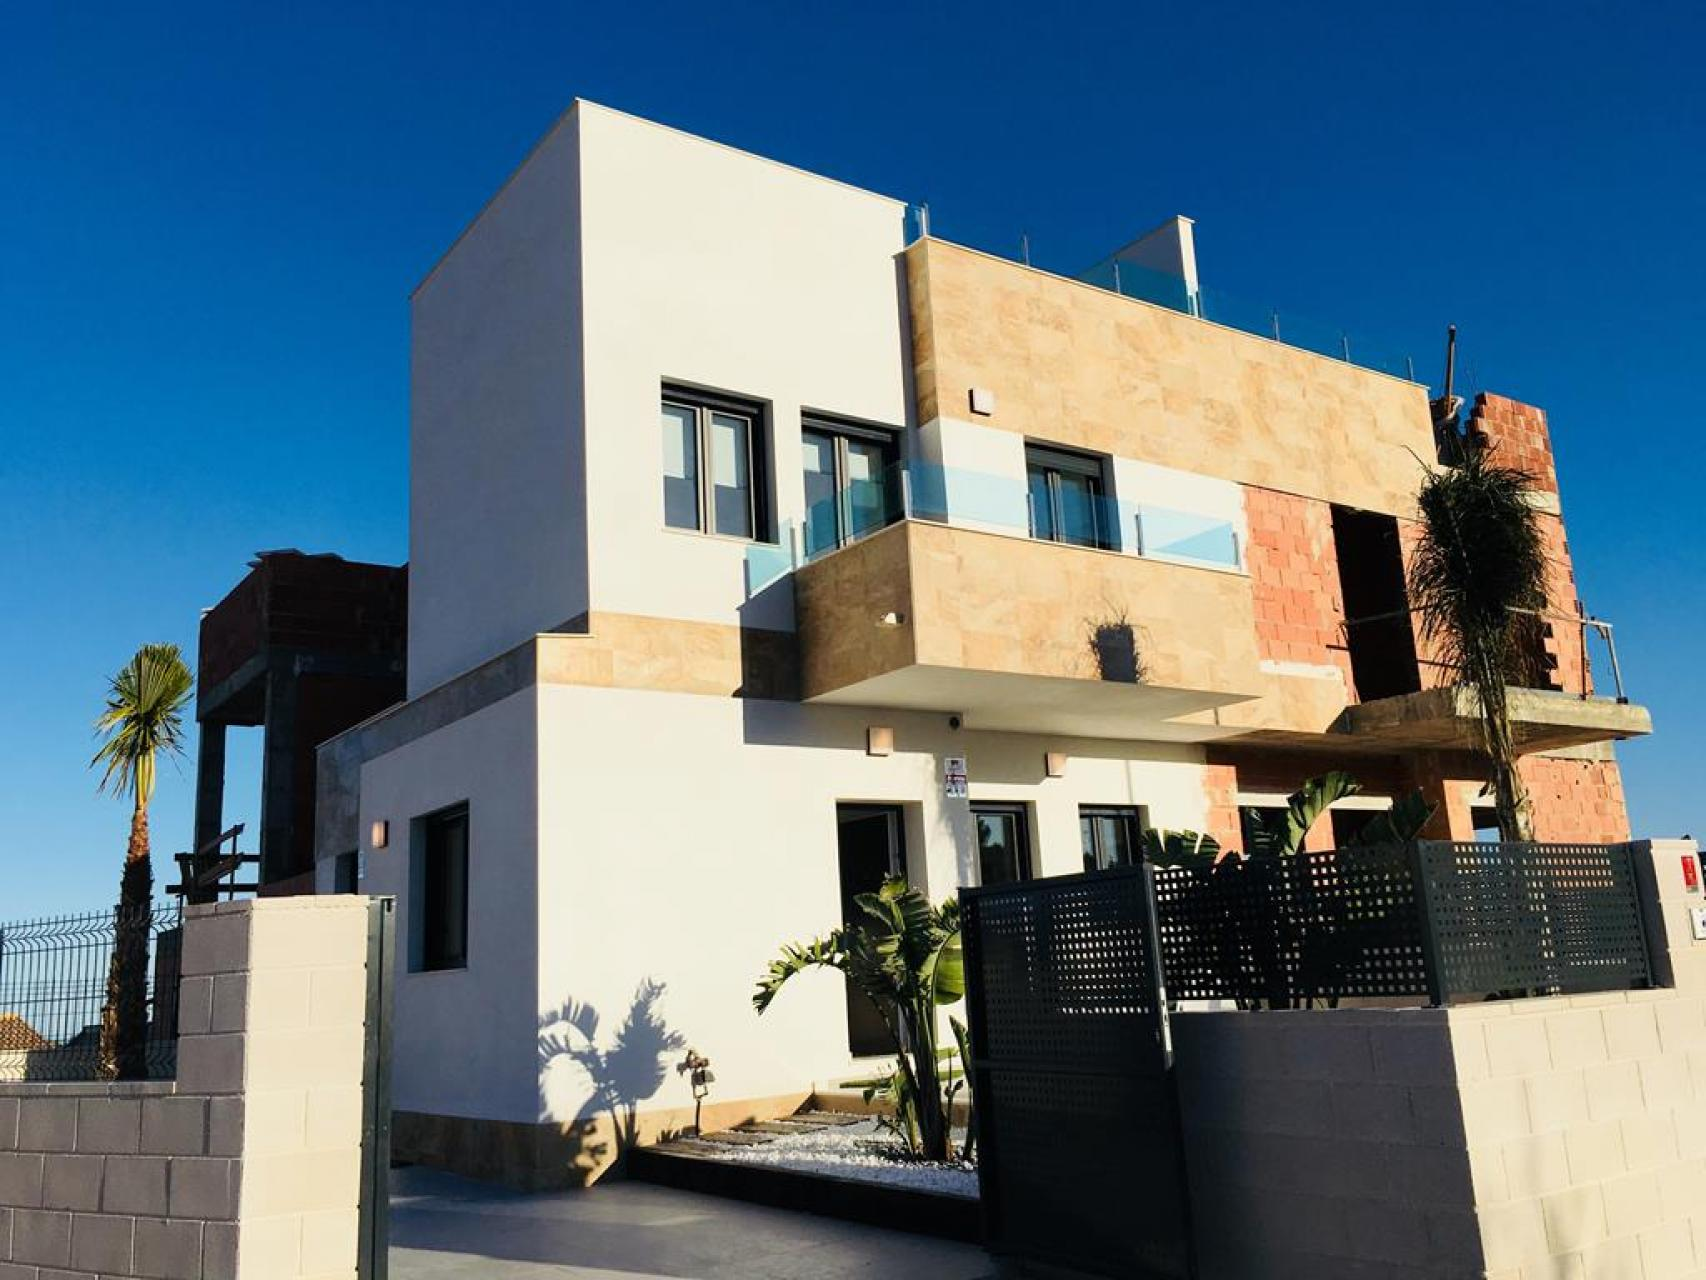 Townhouse in Alicante (Polop)